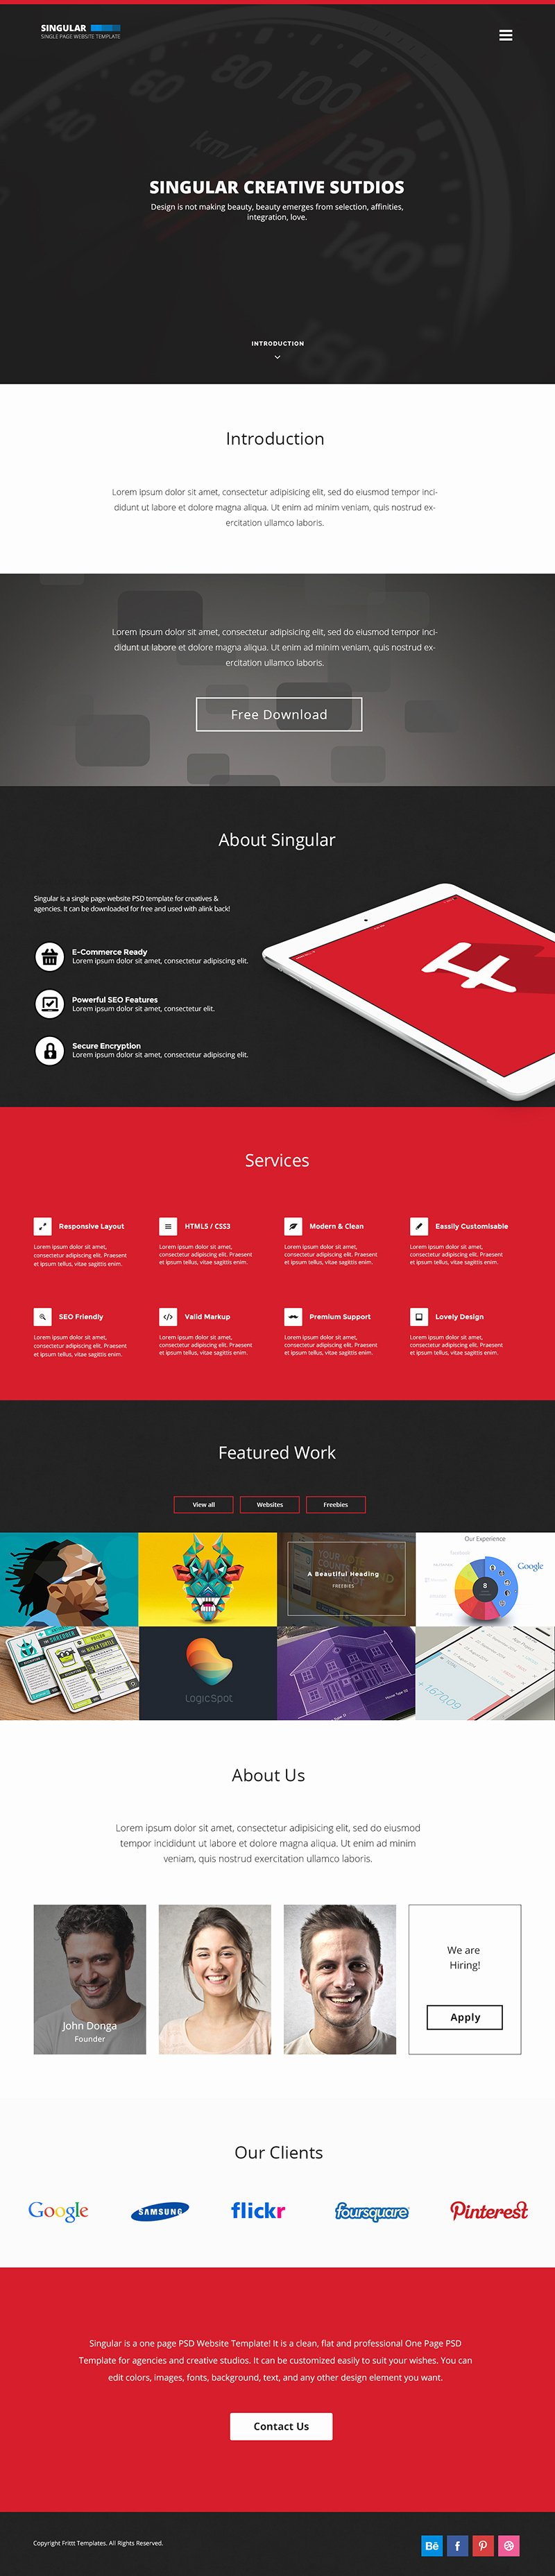 15 Best E Page Website Psd Templates for Web Designers